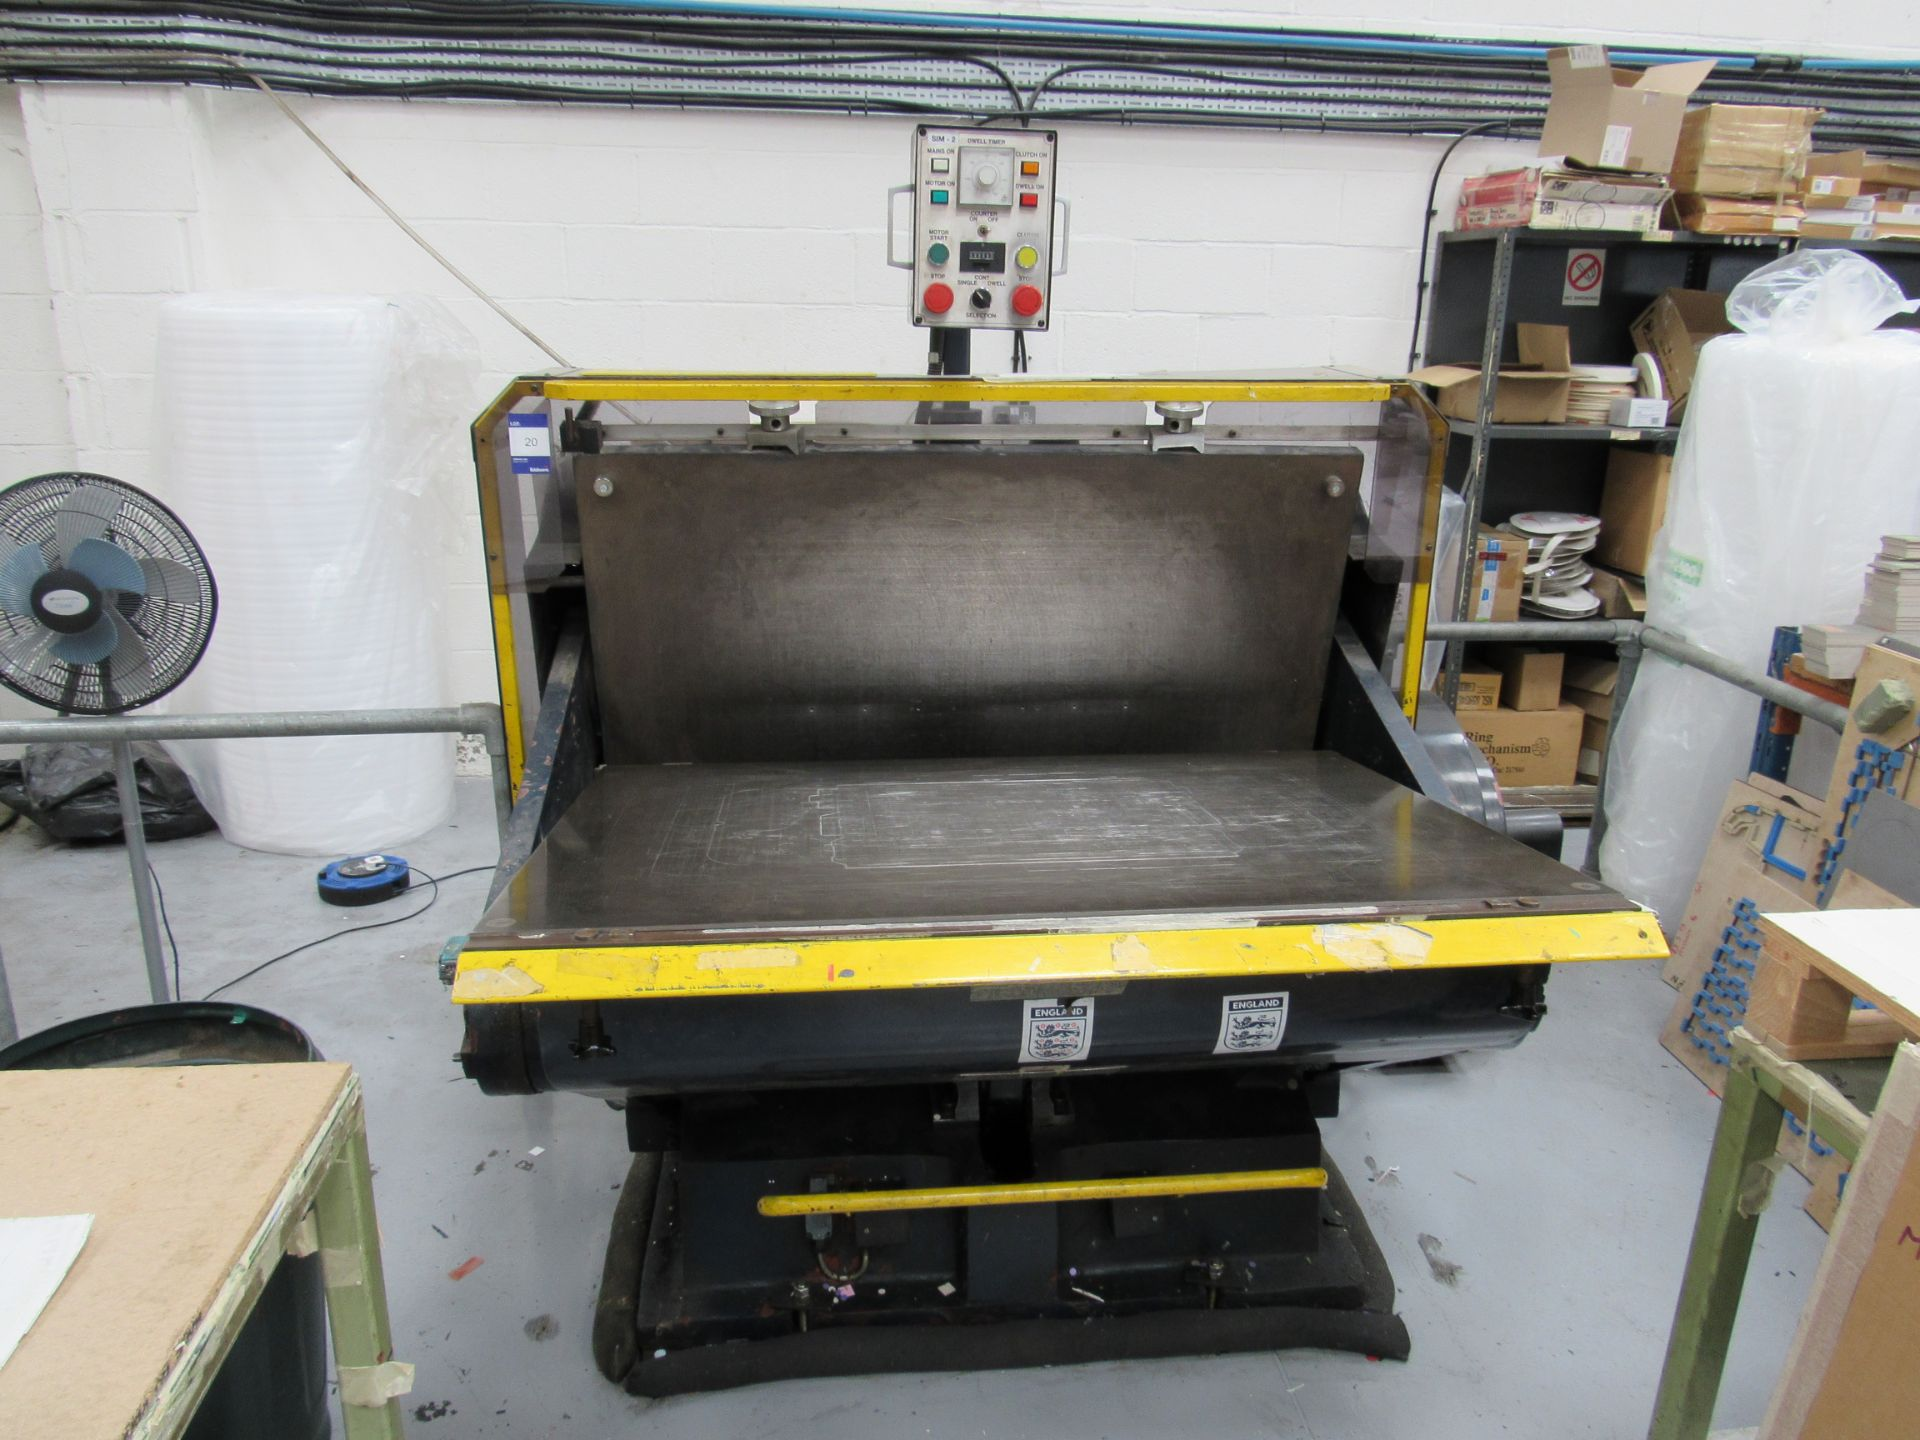 Viking Press VK1330 Cut and Crease Platen 1330 x 960mm Serial Number 97172 - Image 4 of 9